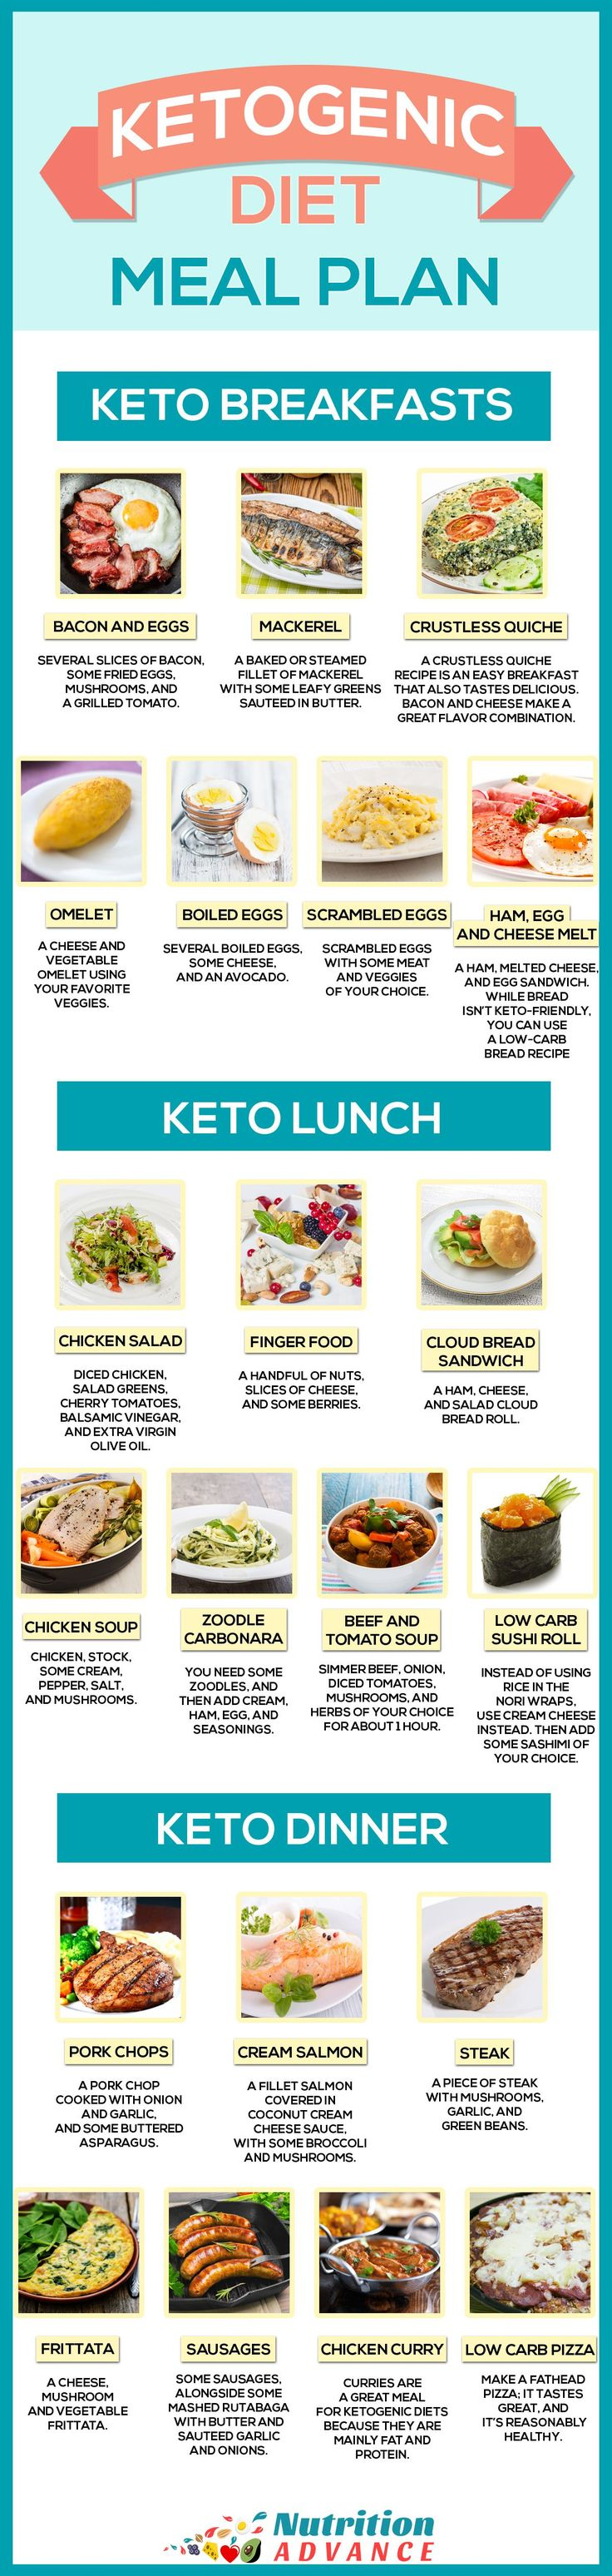 Ketogenic Diet Meal Plan For 7 Days - This infographic shows some ideas for a keto breakfast, lunch, and dinner. All meals are very low in carbs but high in essential vitamins and minerals, and other health-protective nutrients. The ketogenic diet is one of the healthiest ways of eating when correctly formulated, and this is based on the meal plan available in the guide to ketogenic diets at http://nutritionadvance.com/ketogenic-diet-ultimate-guide-to-keto #KetogenicDiet